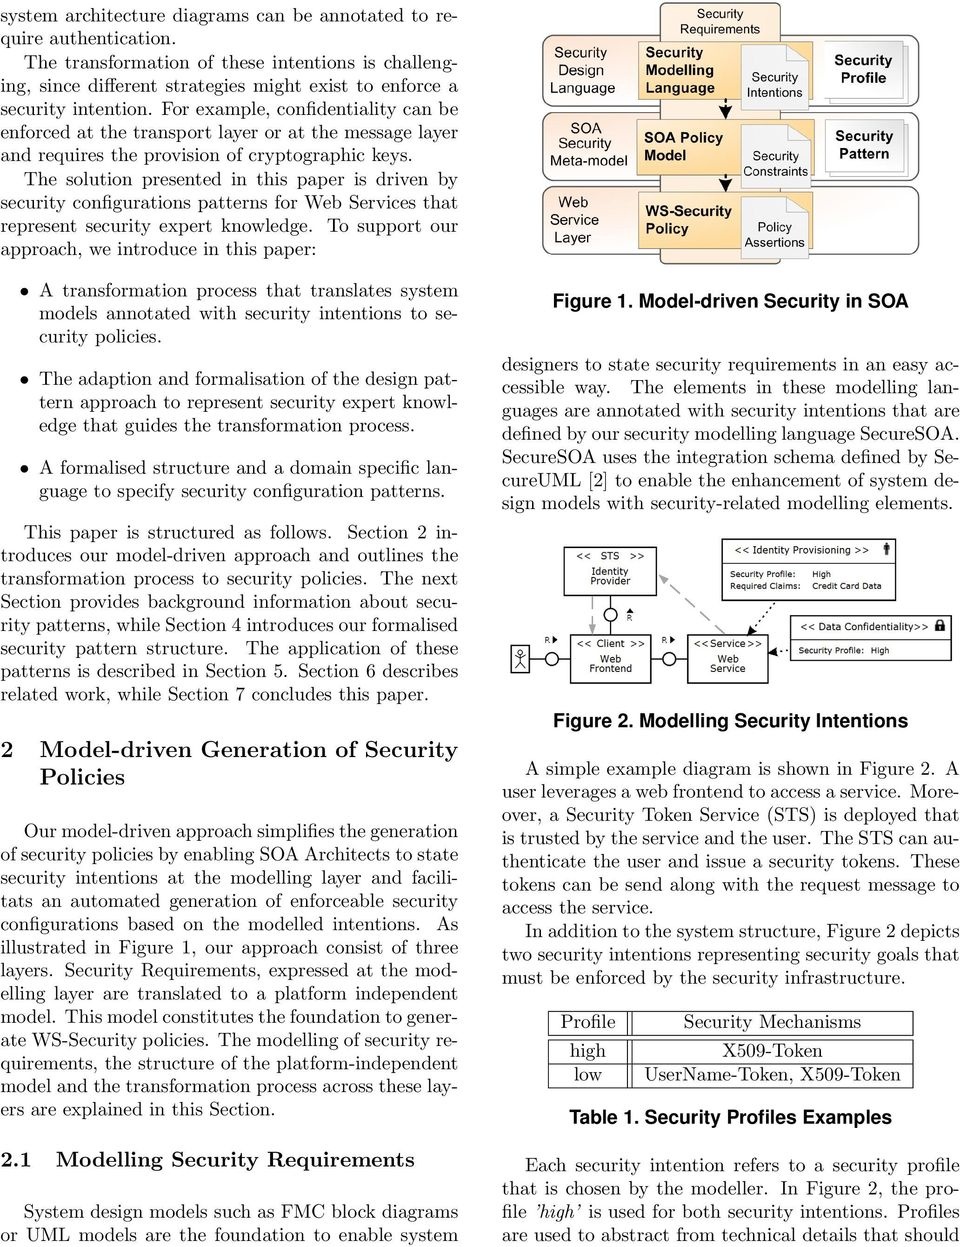 The solution presented in this paper is driven by security configurations patterns for Web Services that represent security expert knowledge.